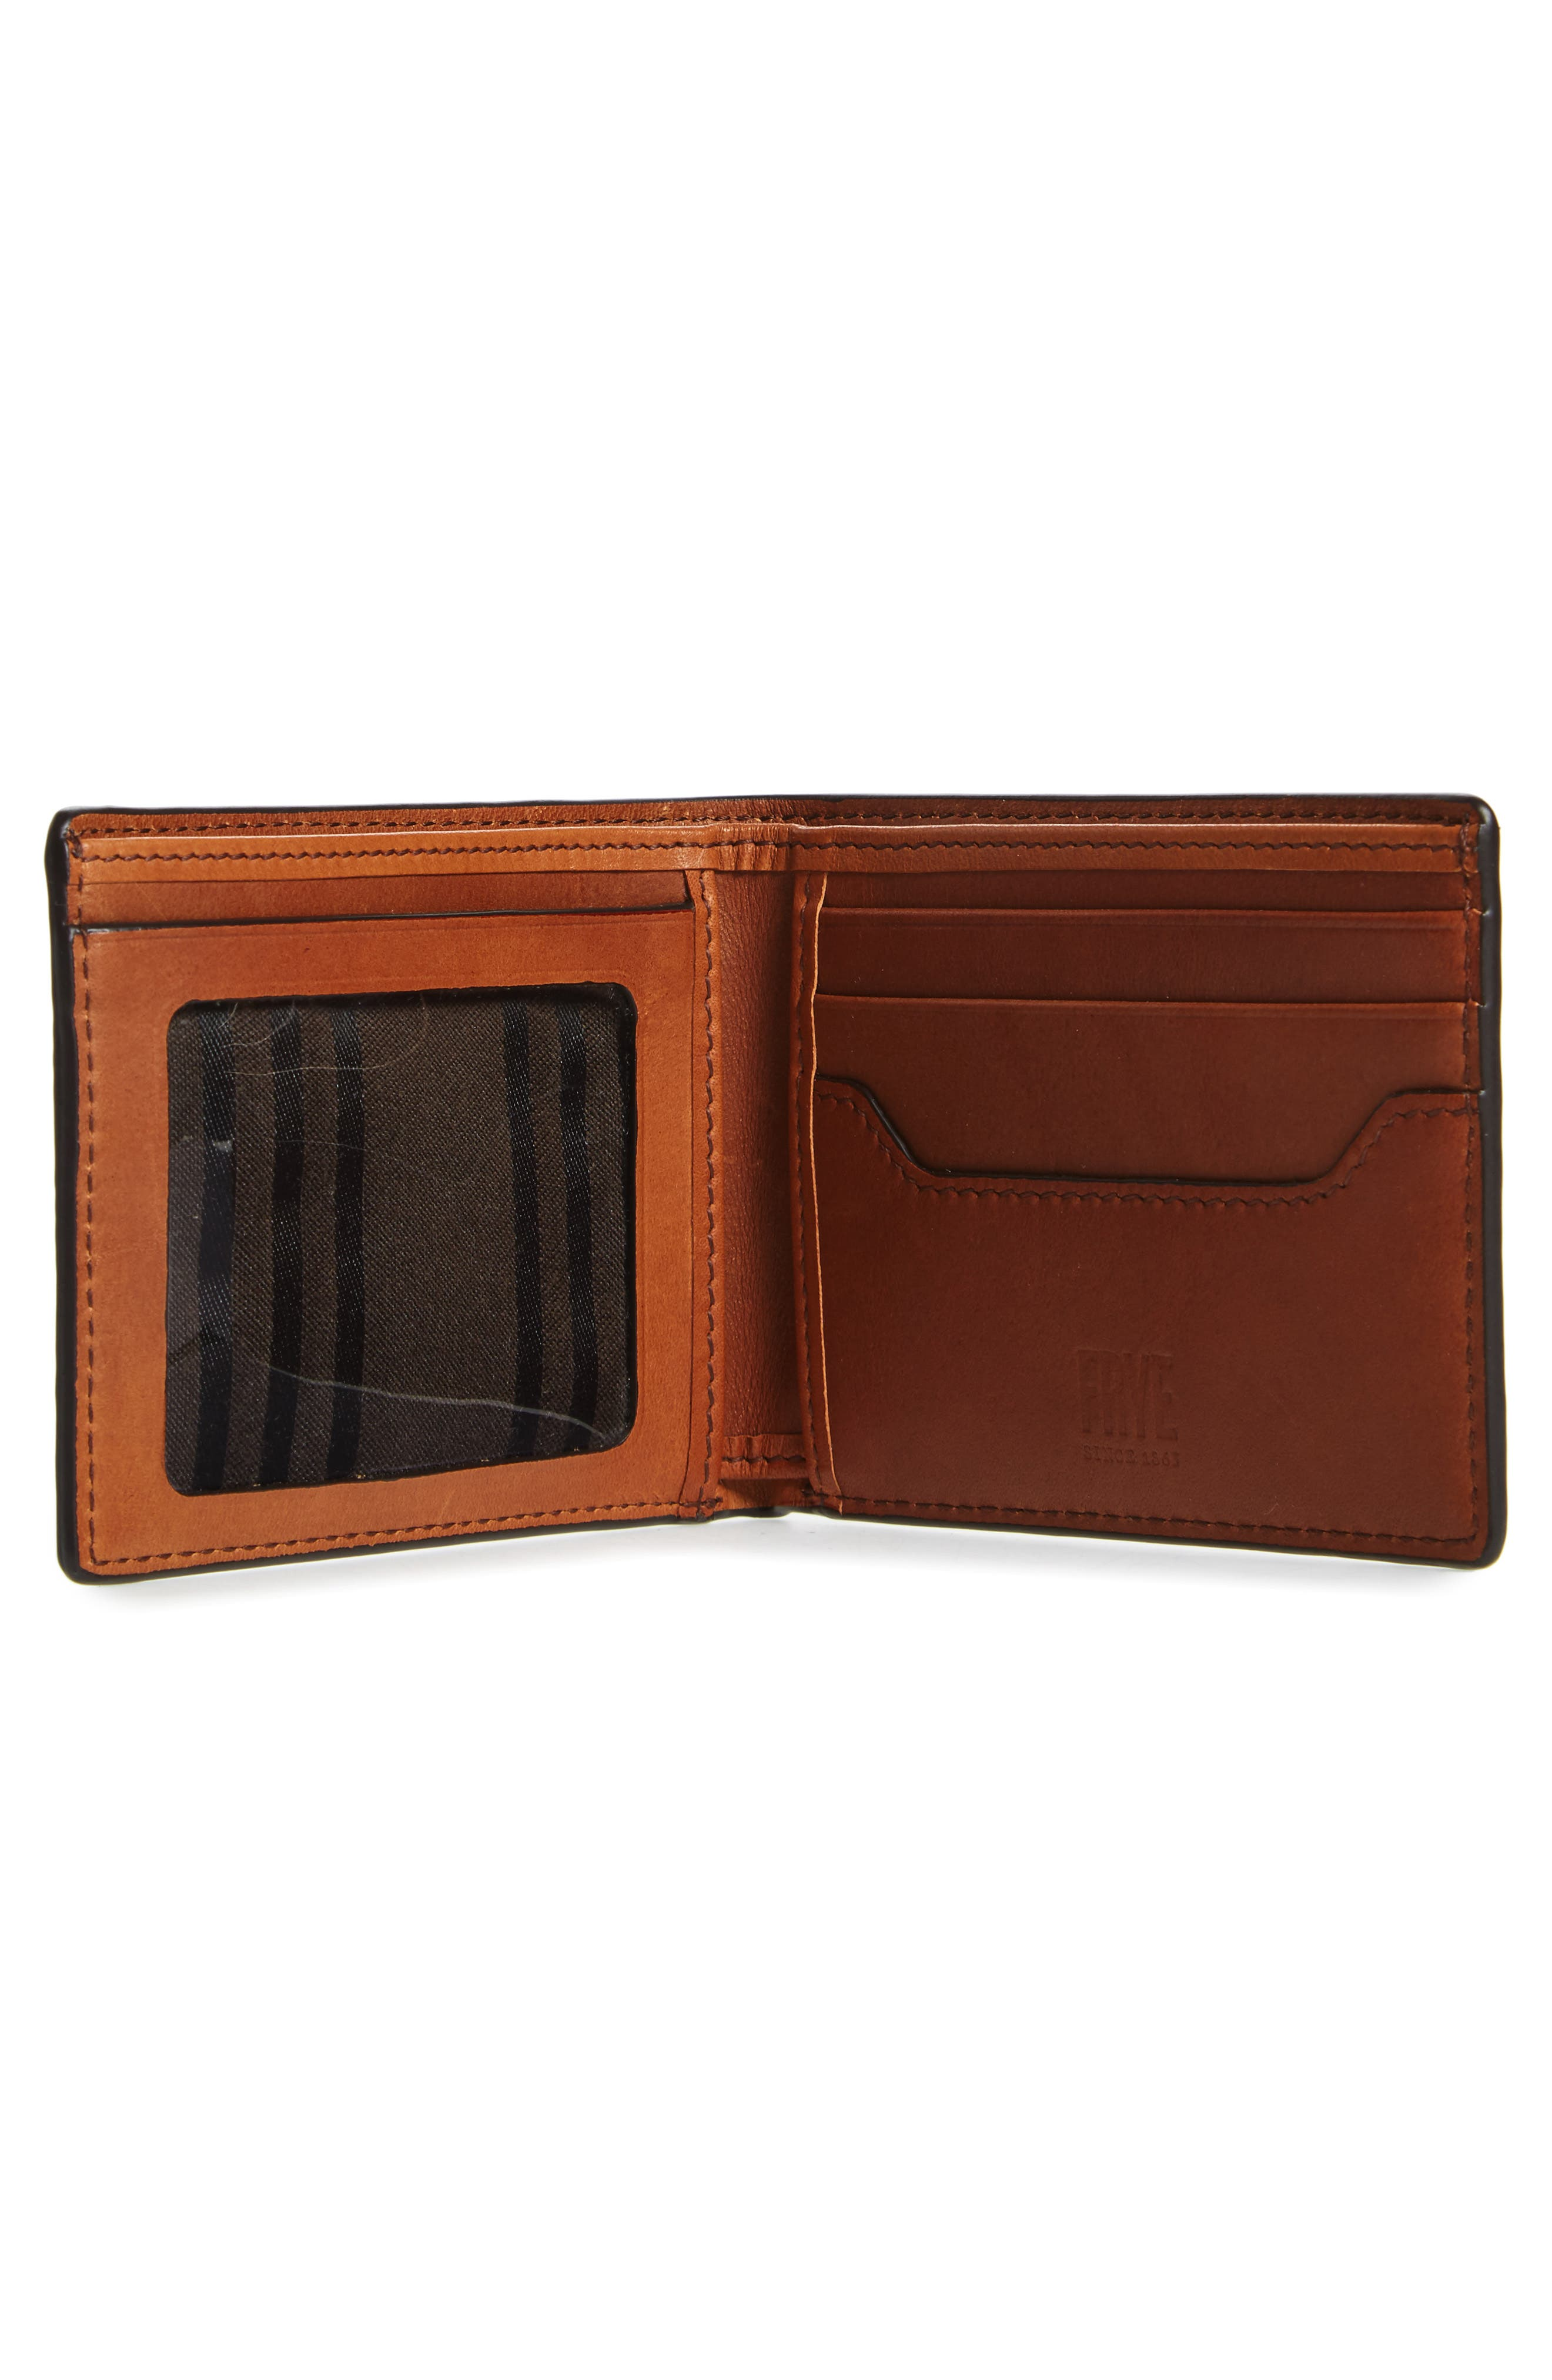 FRYE, Logan Leather Wallet, Alternate thumbnail 2, color, COGNAC